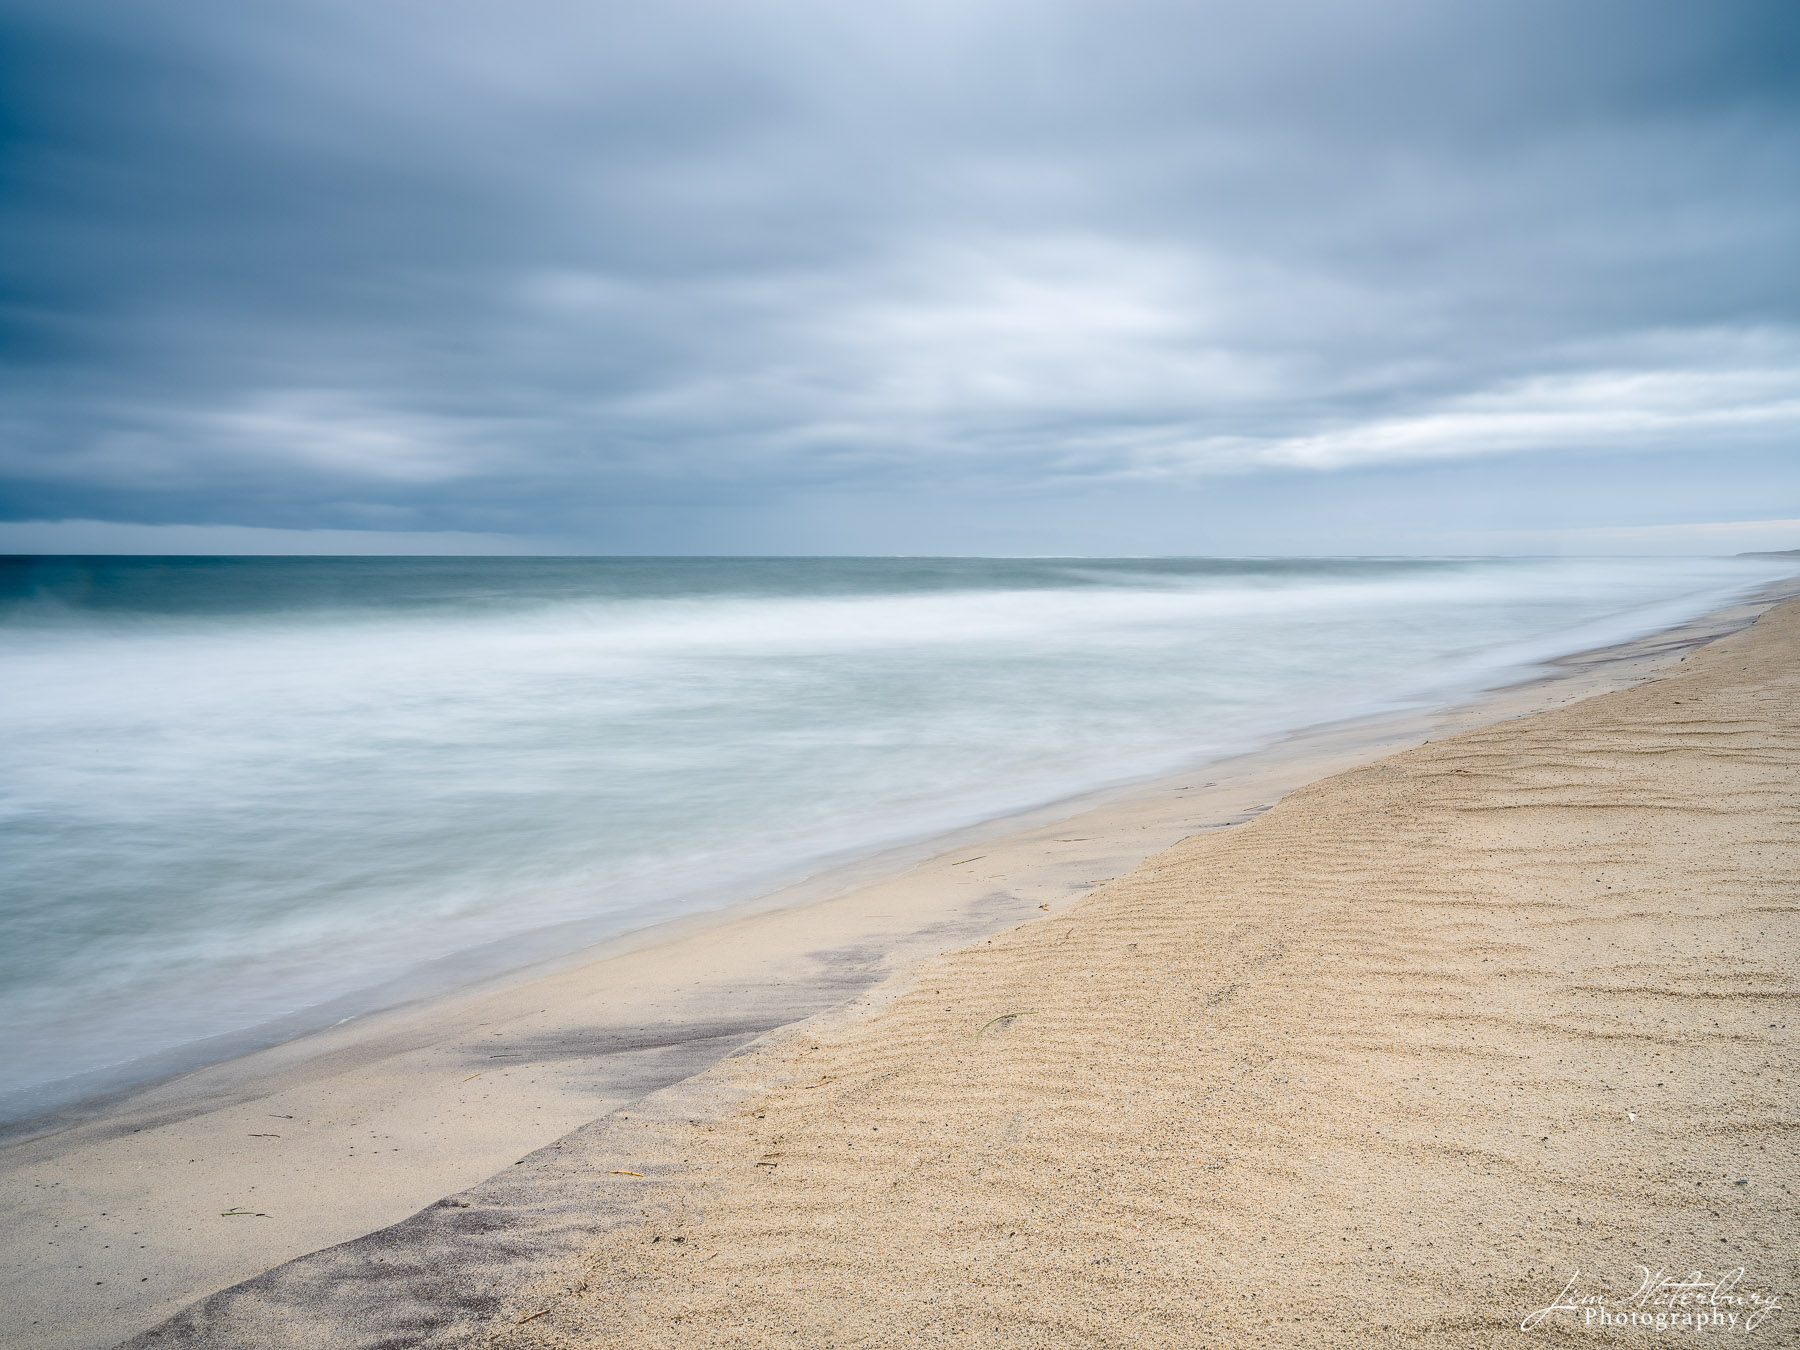 A long exposure blurs the water and shows movement in the gray skies over the ocean in Nantucket, MA.